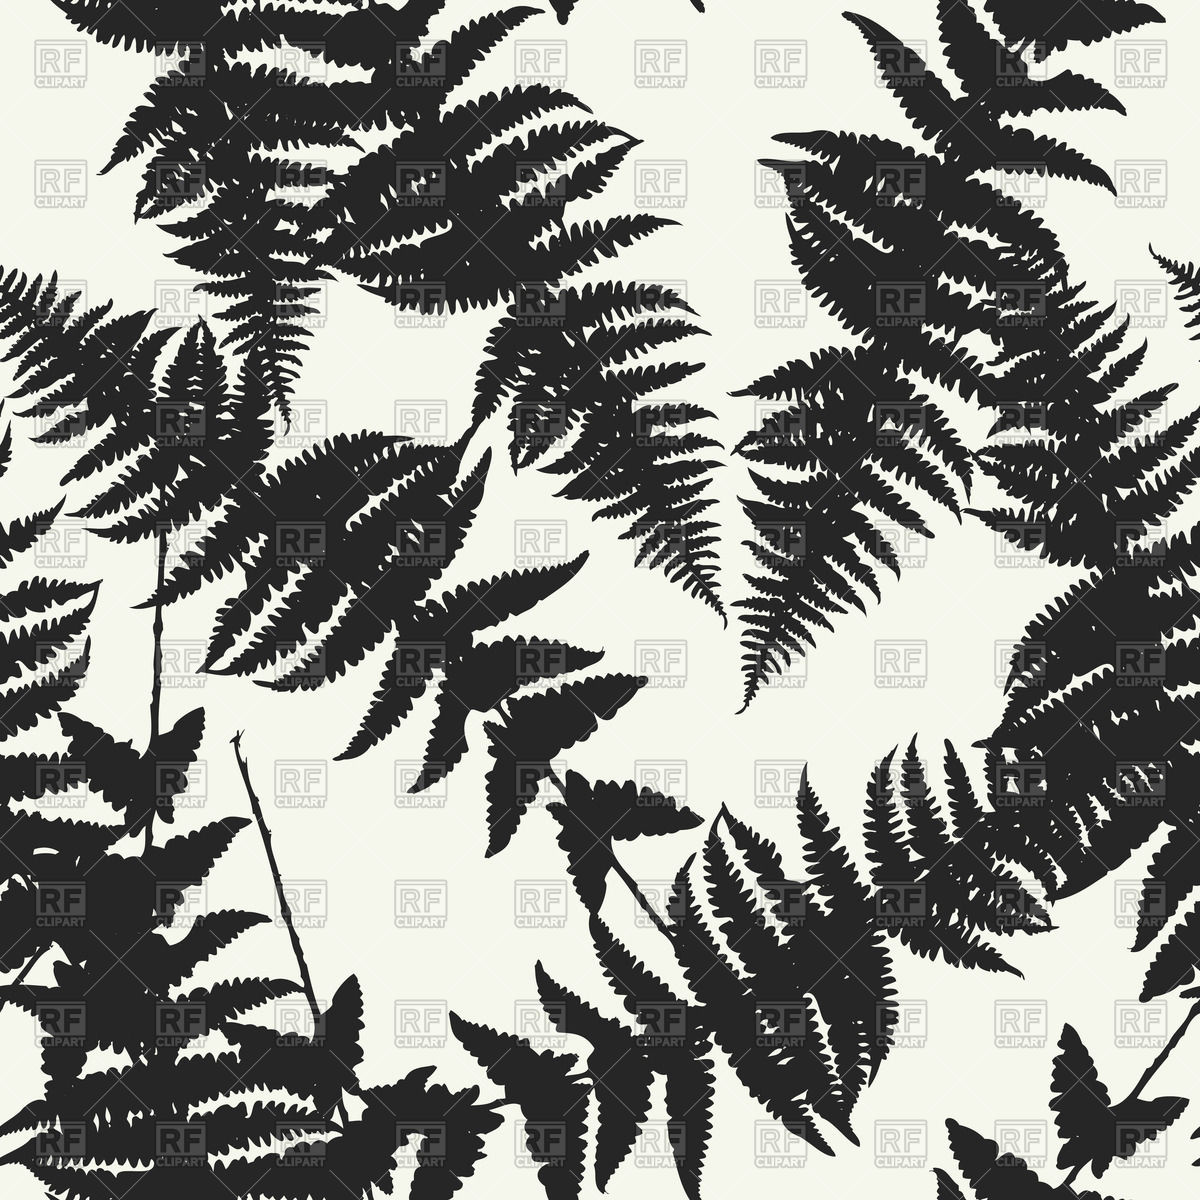 Seamless pattern of fern leaves Vector Image #71551.